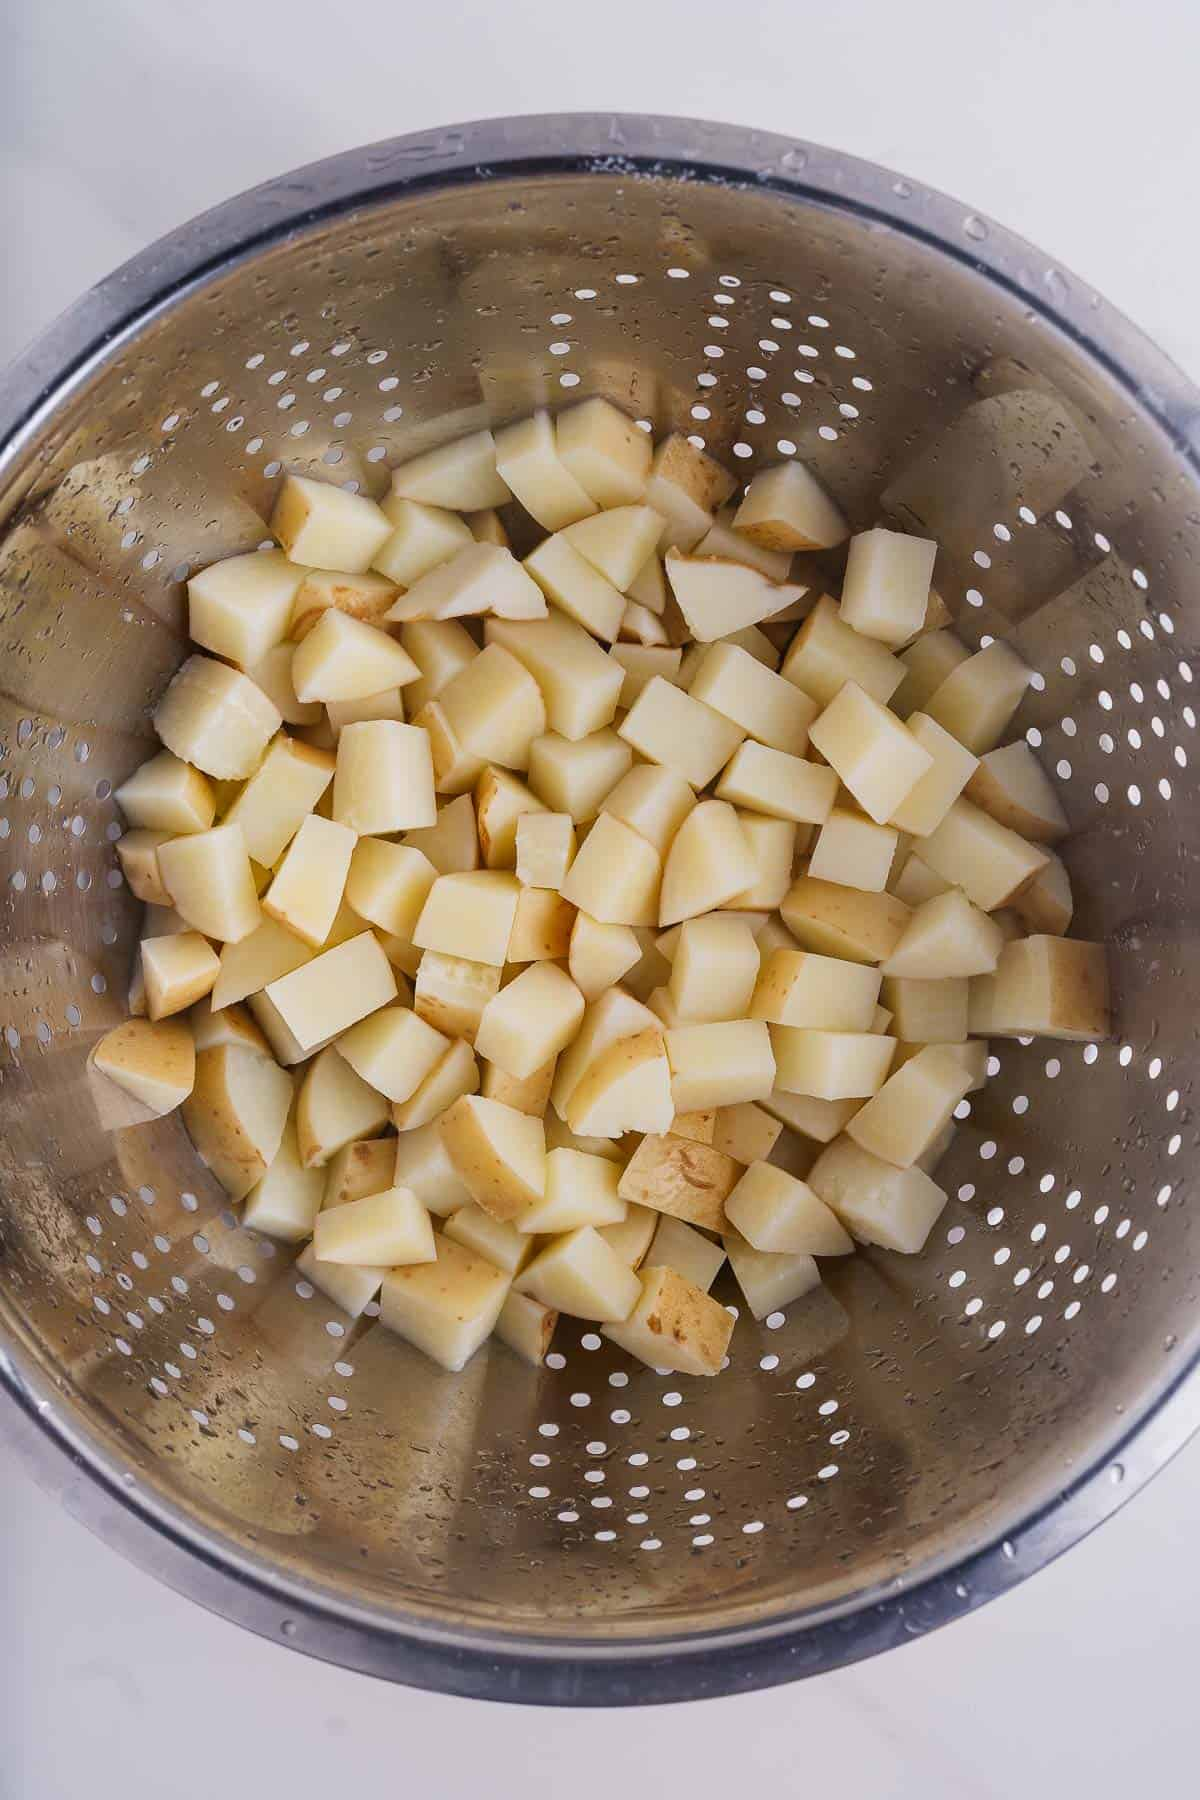 Potato Cubes in a Strainer